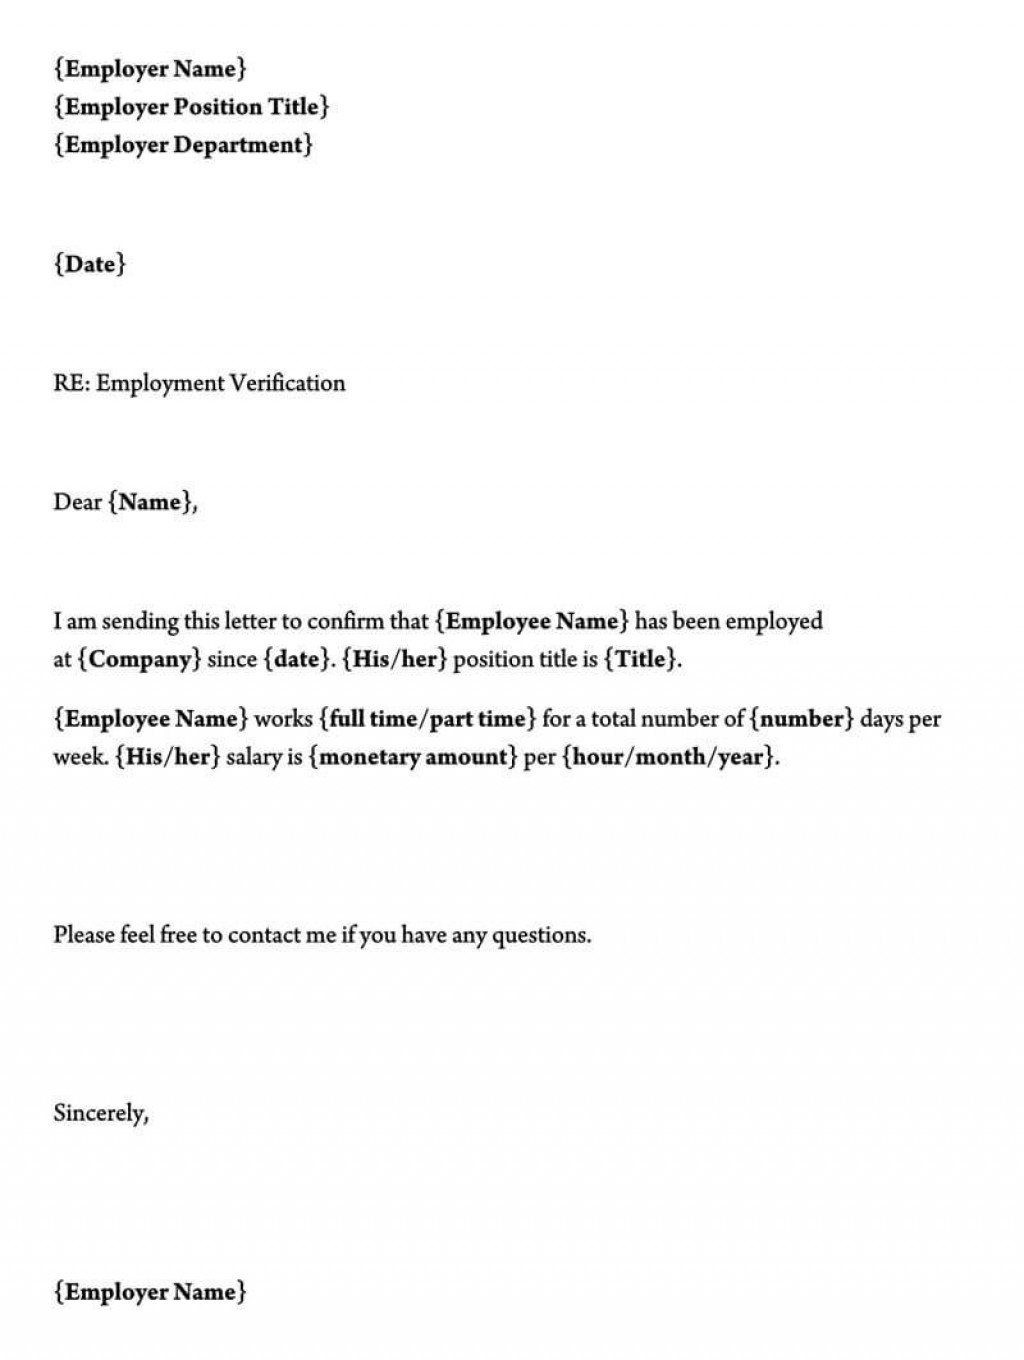 002 Beautiful Proof Of Employment Letter Template Photo  Confirmation Word FreeLarge